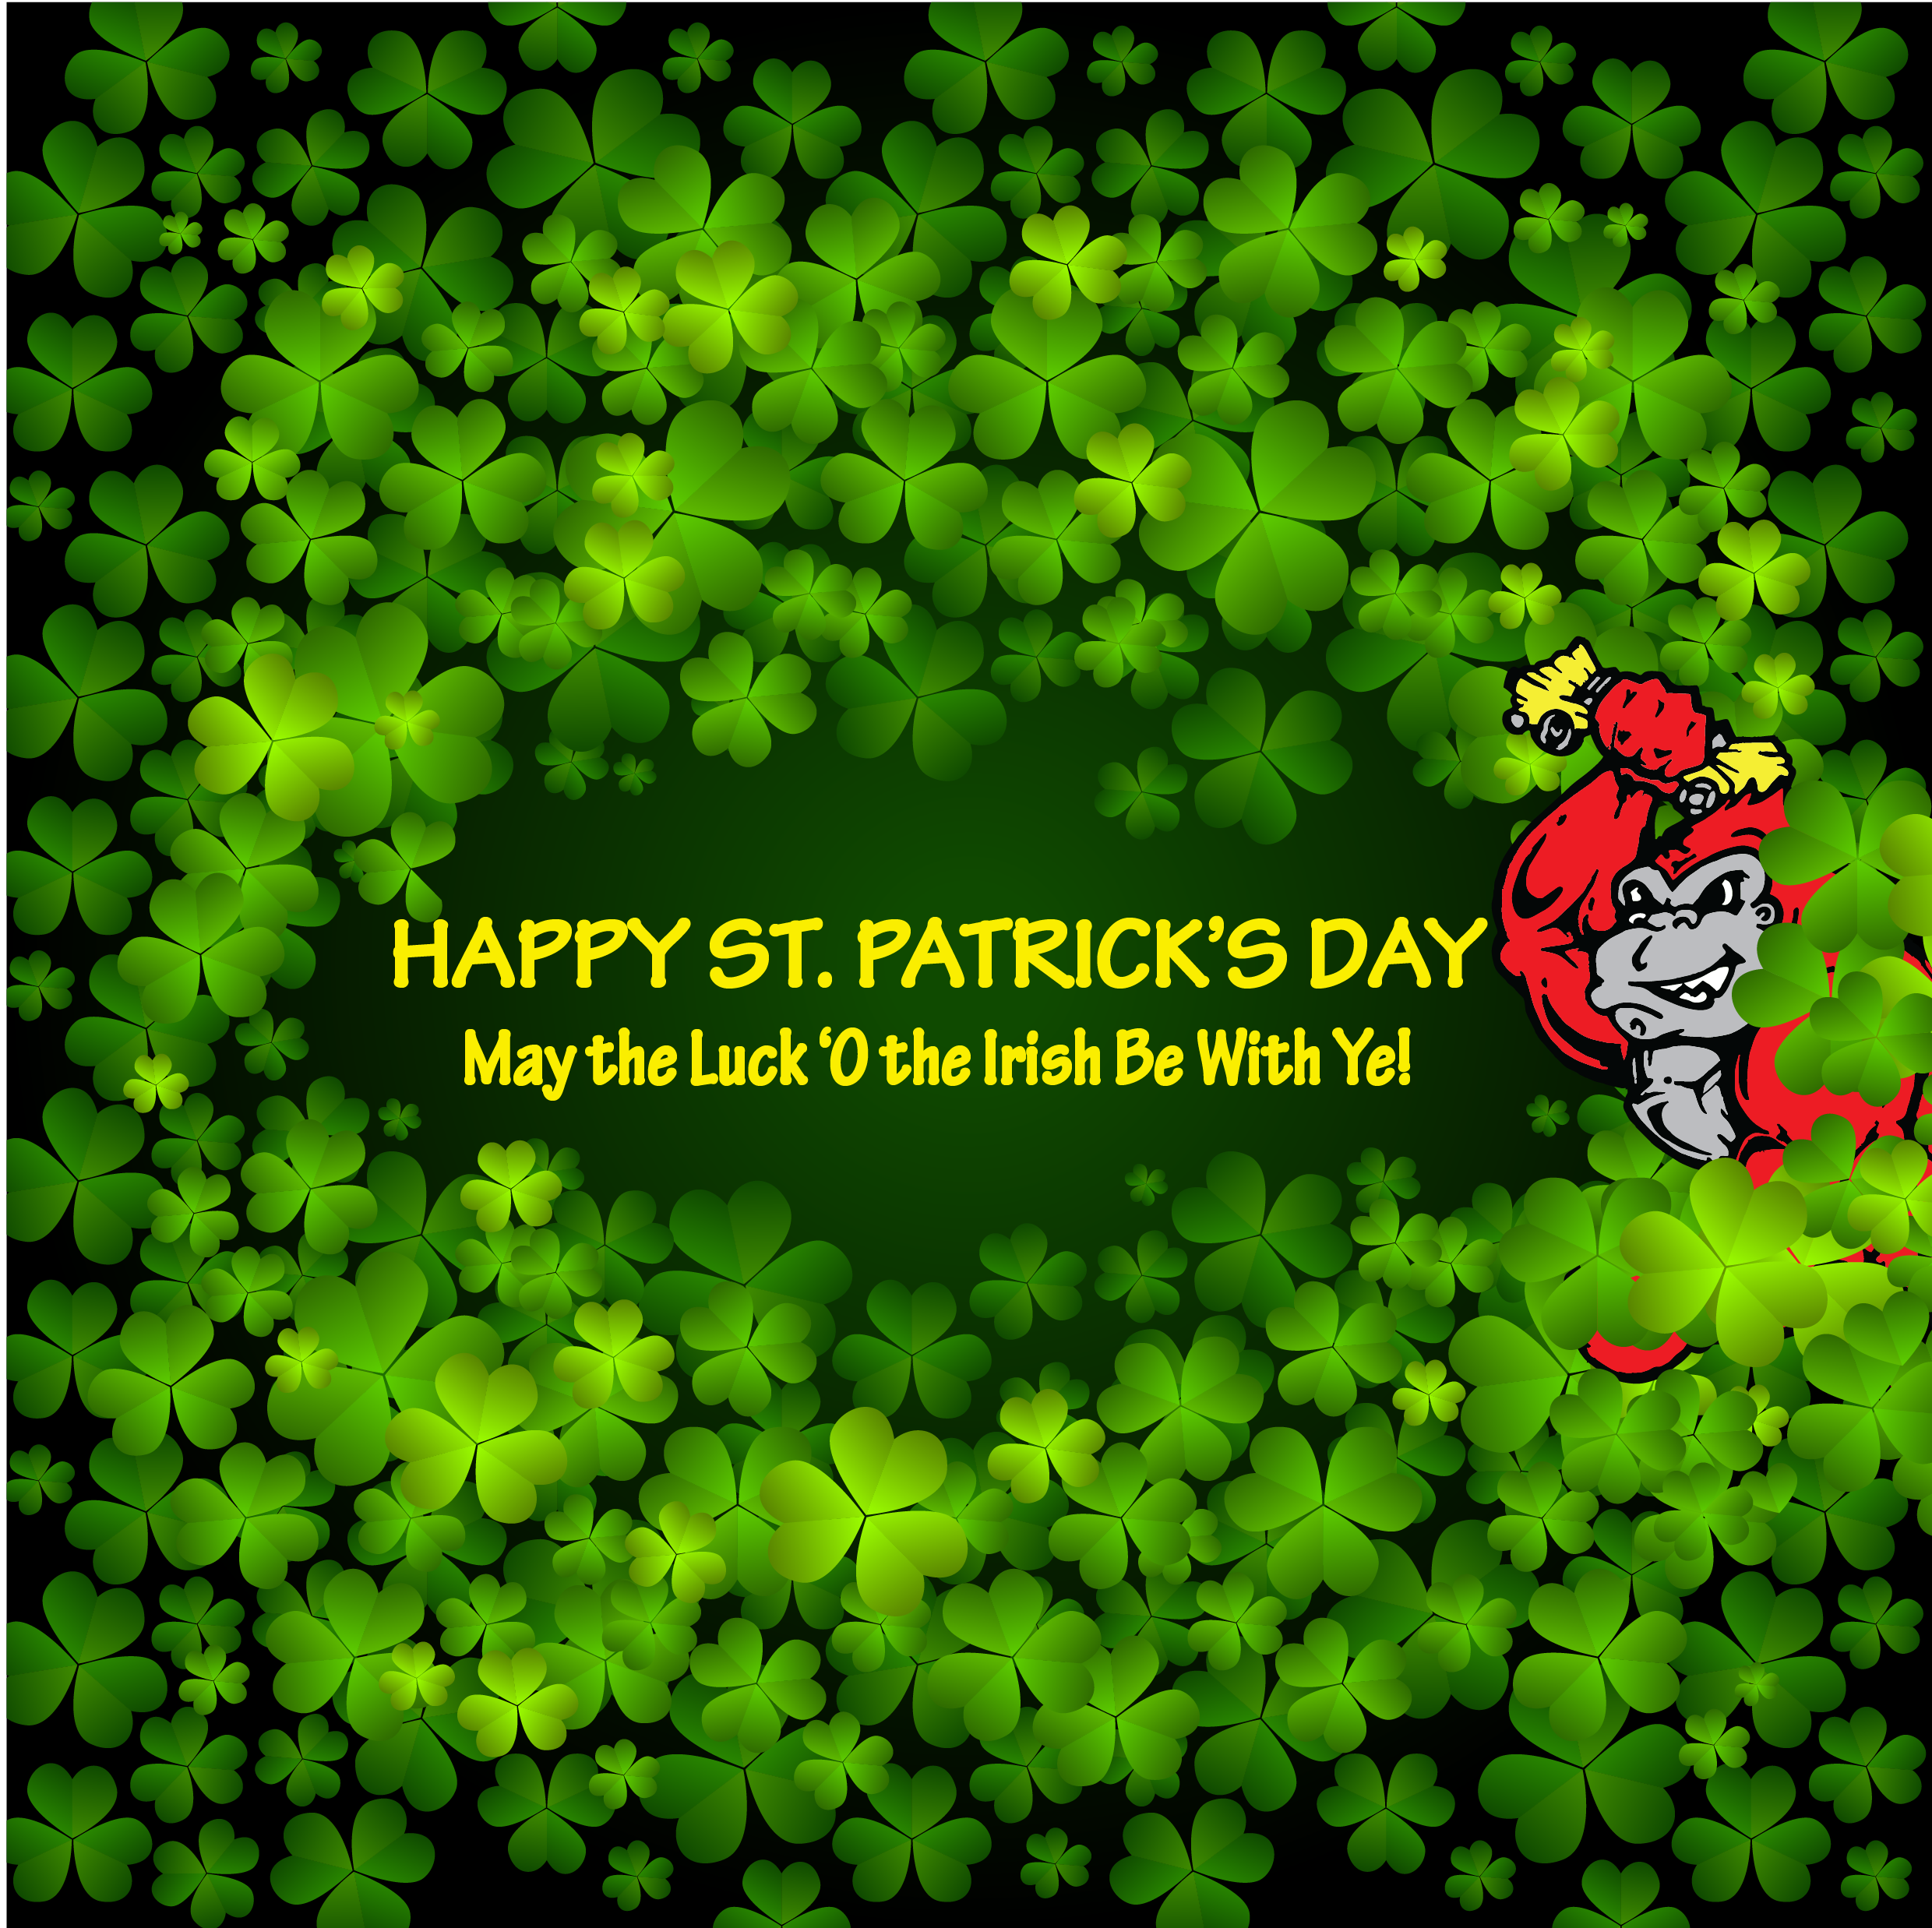 Happy St. Patrick's Day from Auto Parts of Shelby